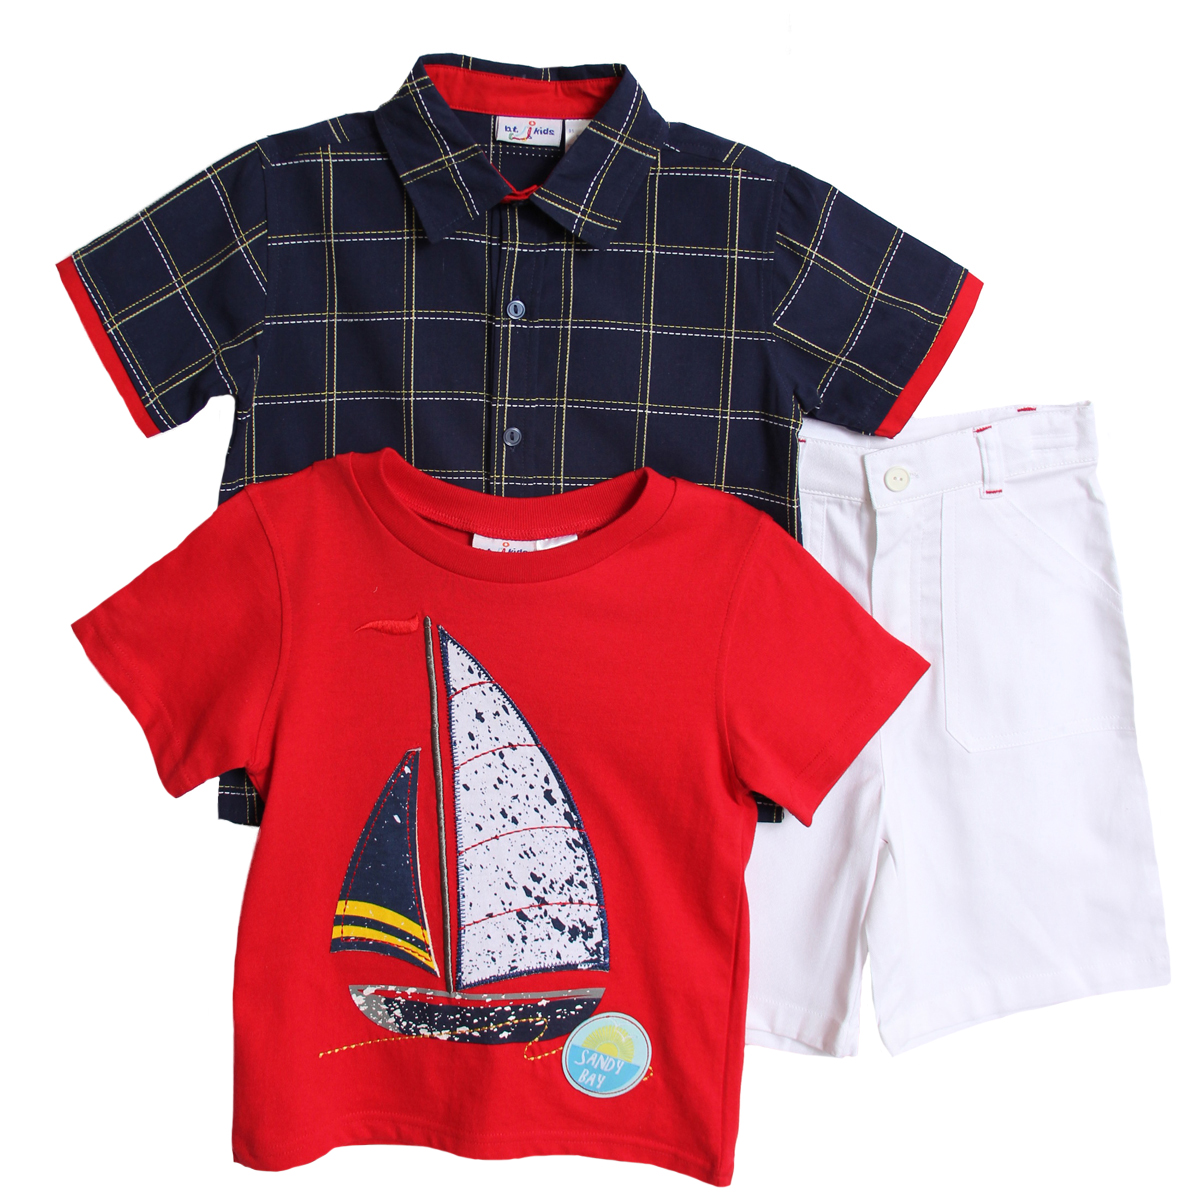 B. T. Kids Boys (4-7) 3 pc navy plaid shirt, red tshirt and white shorts set at Sears.com